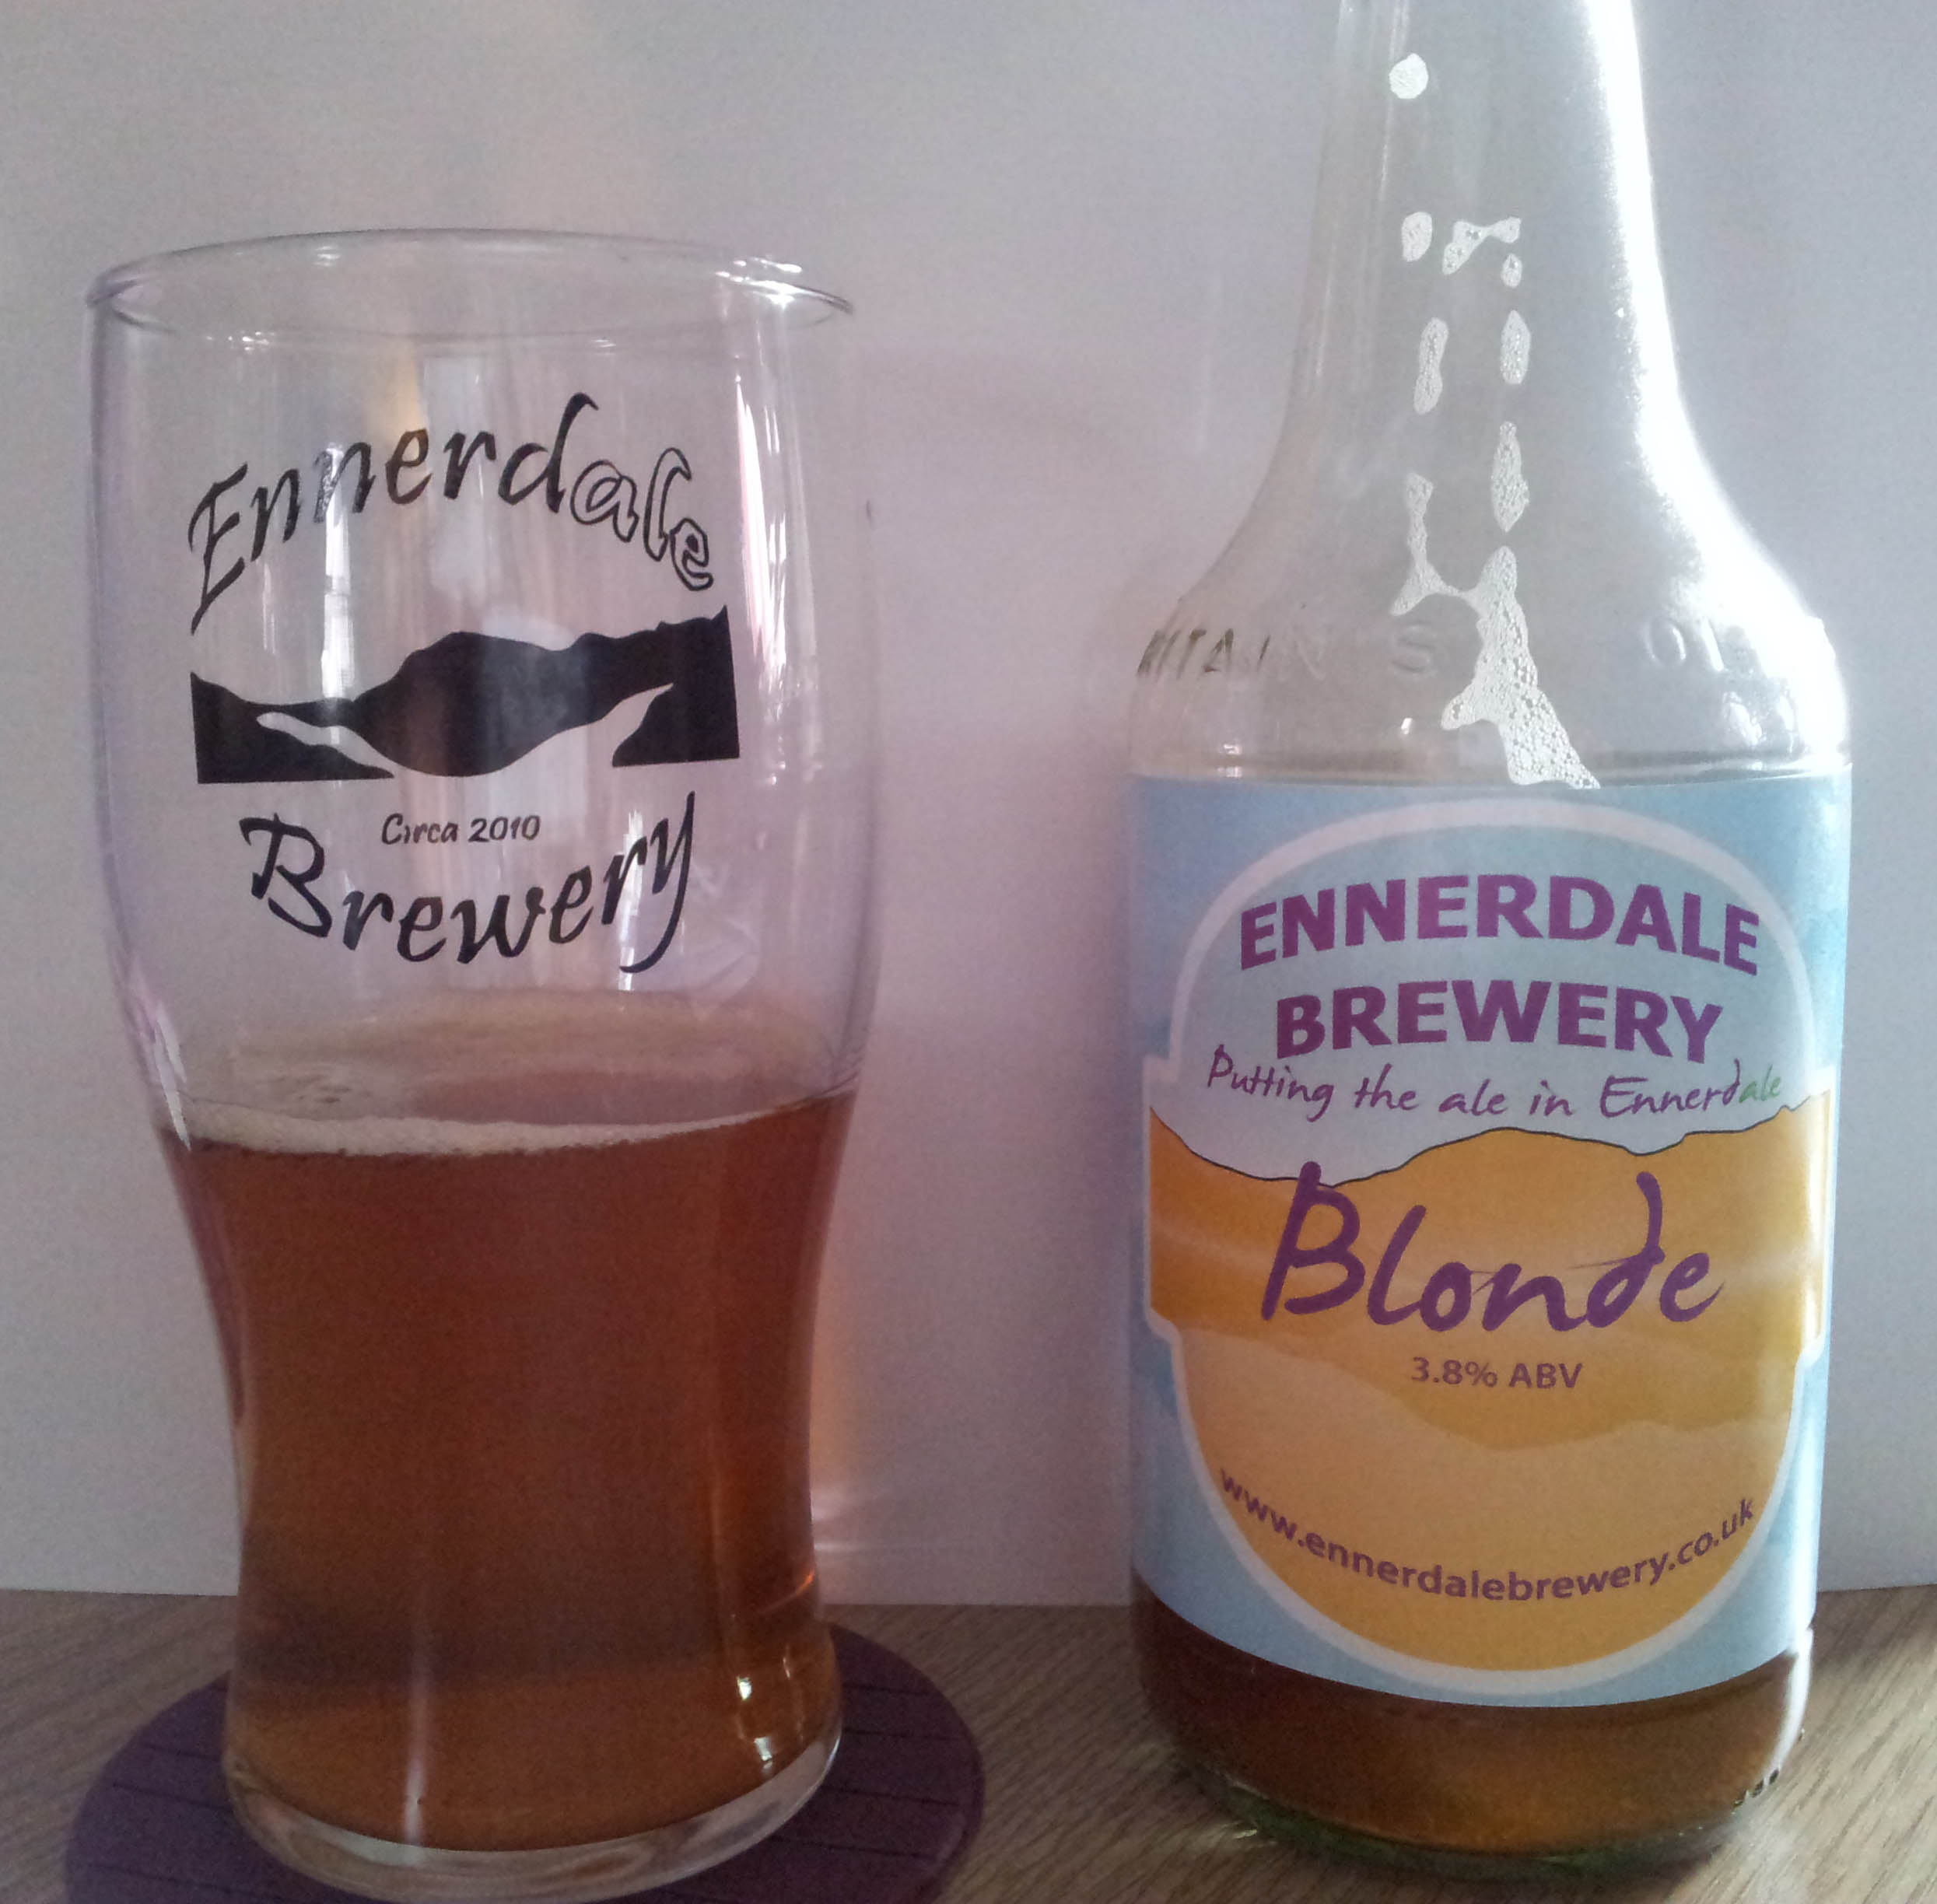 Bottled Blonde from Ennerdale Brewery